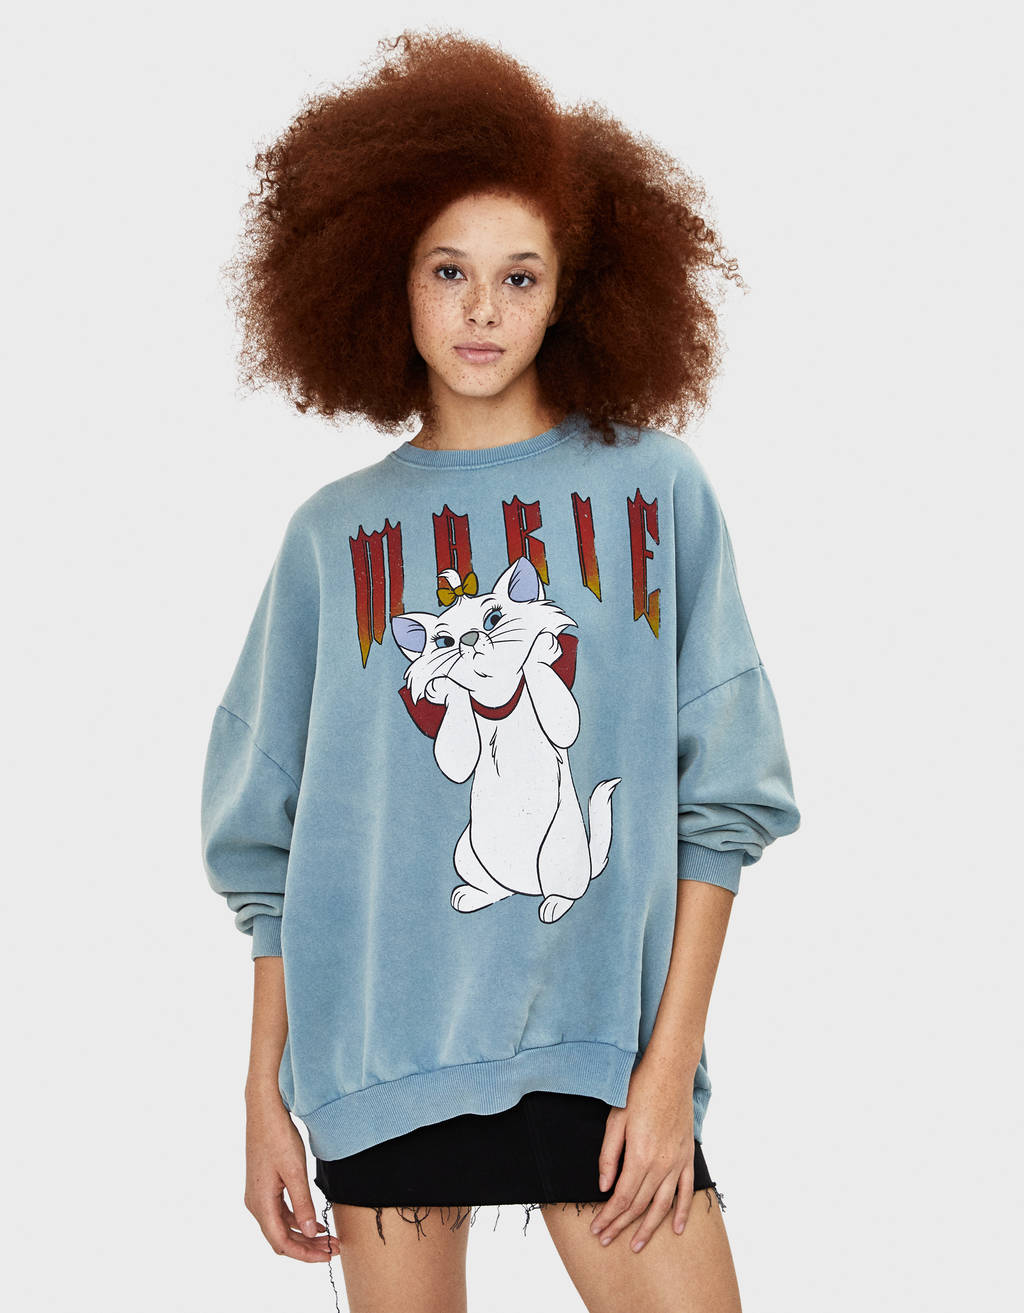 The Aristocats sweatshirt